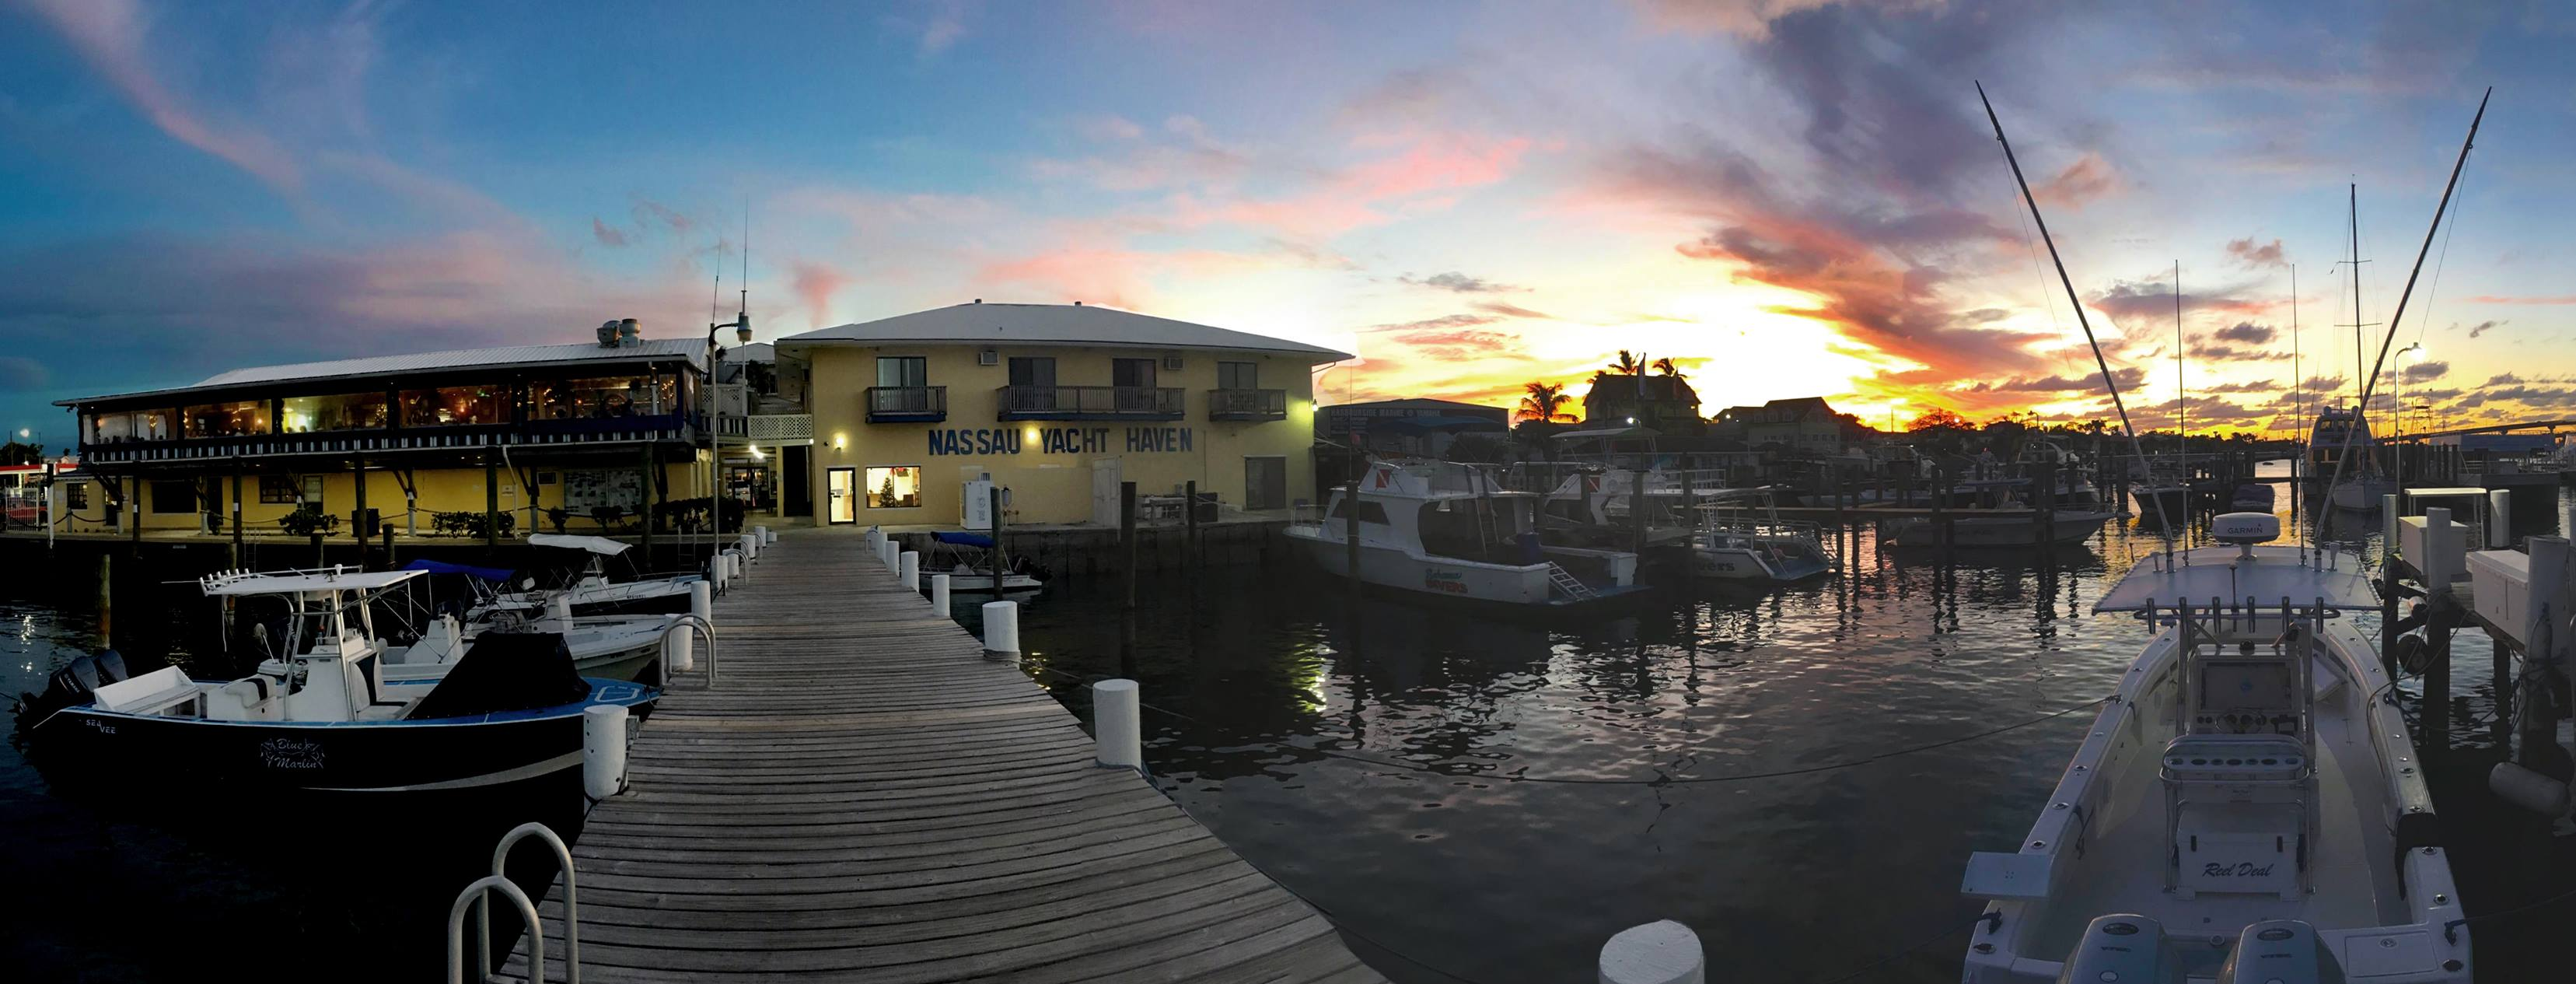 Nassau Yacht Haven Docks | 2019 top destinations | Snag-A-Slip